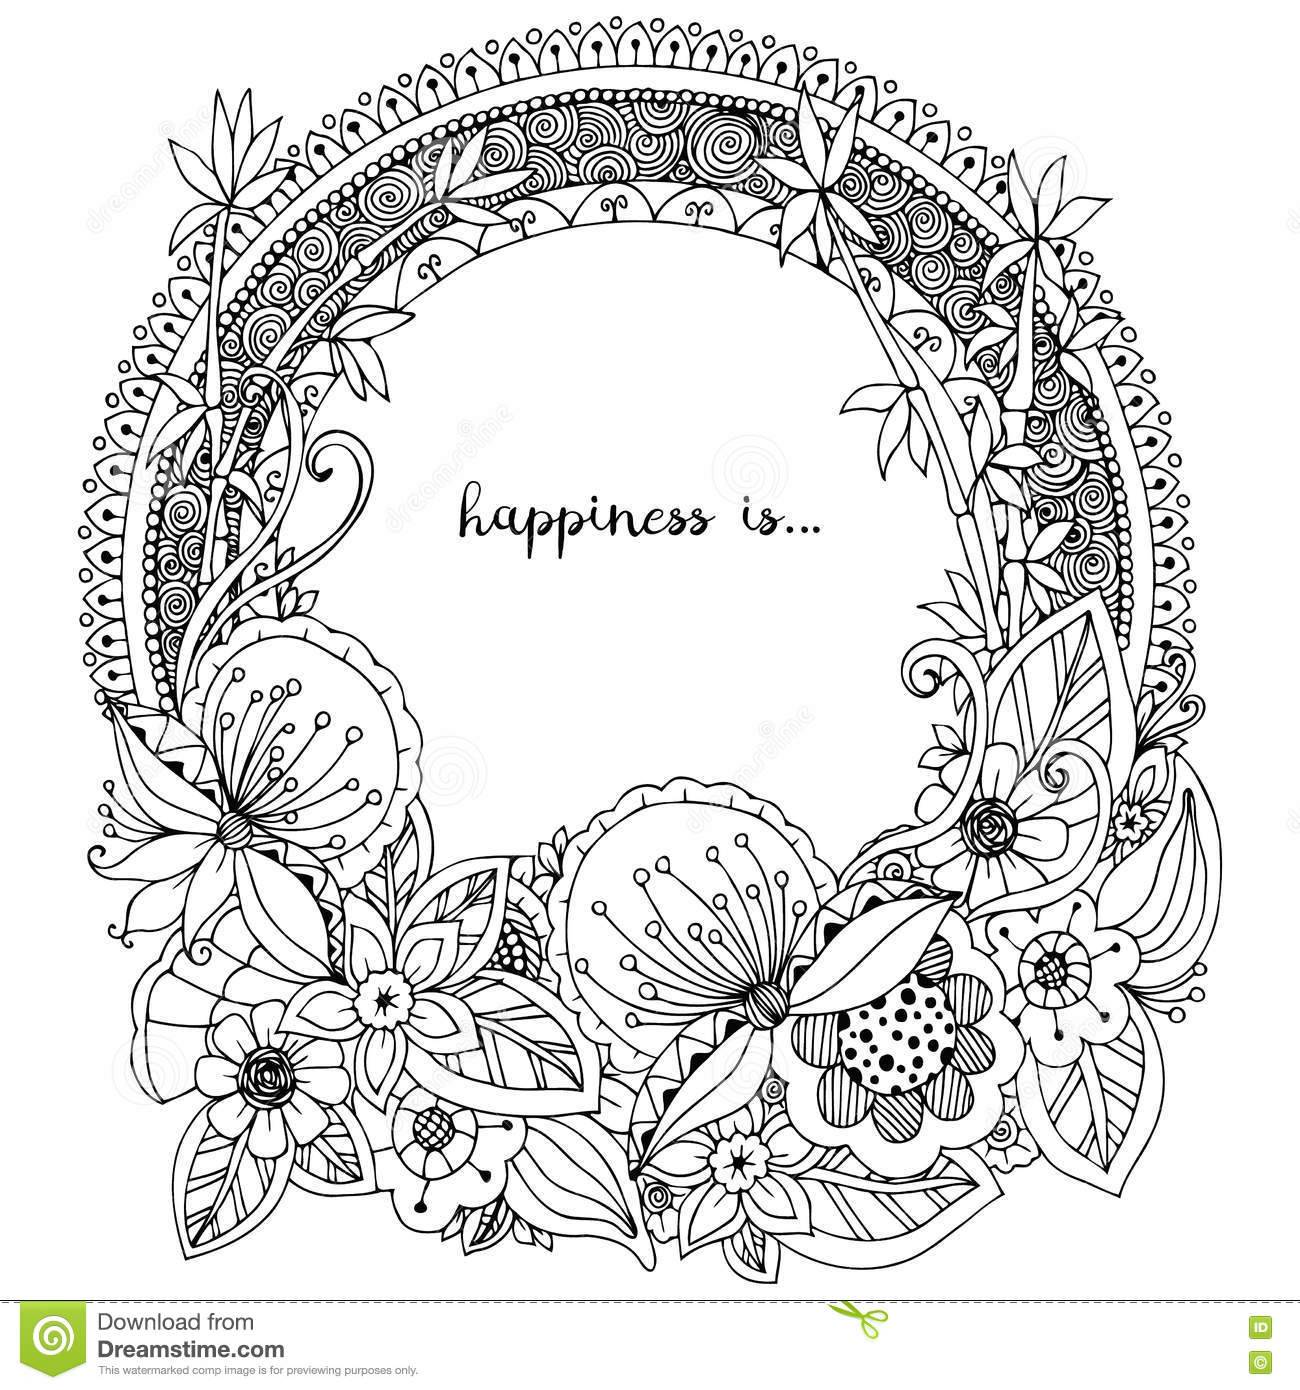 Download Vector Illustration Zen Tangle Doodle Round Frame With Flowers Mandala Coloring Book